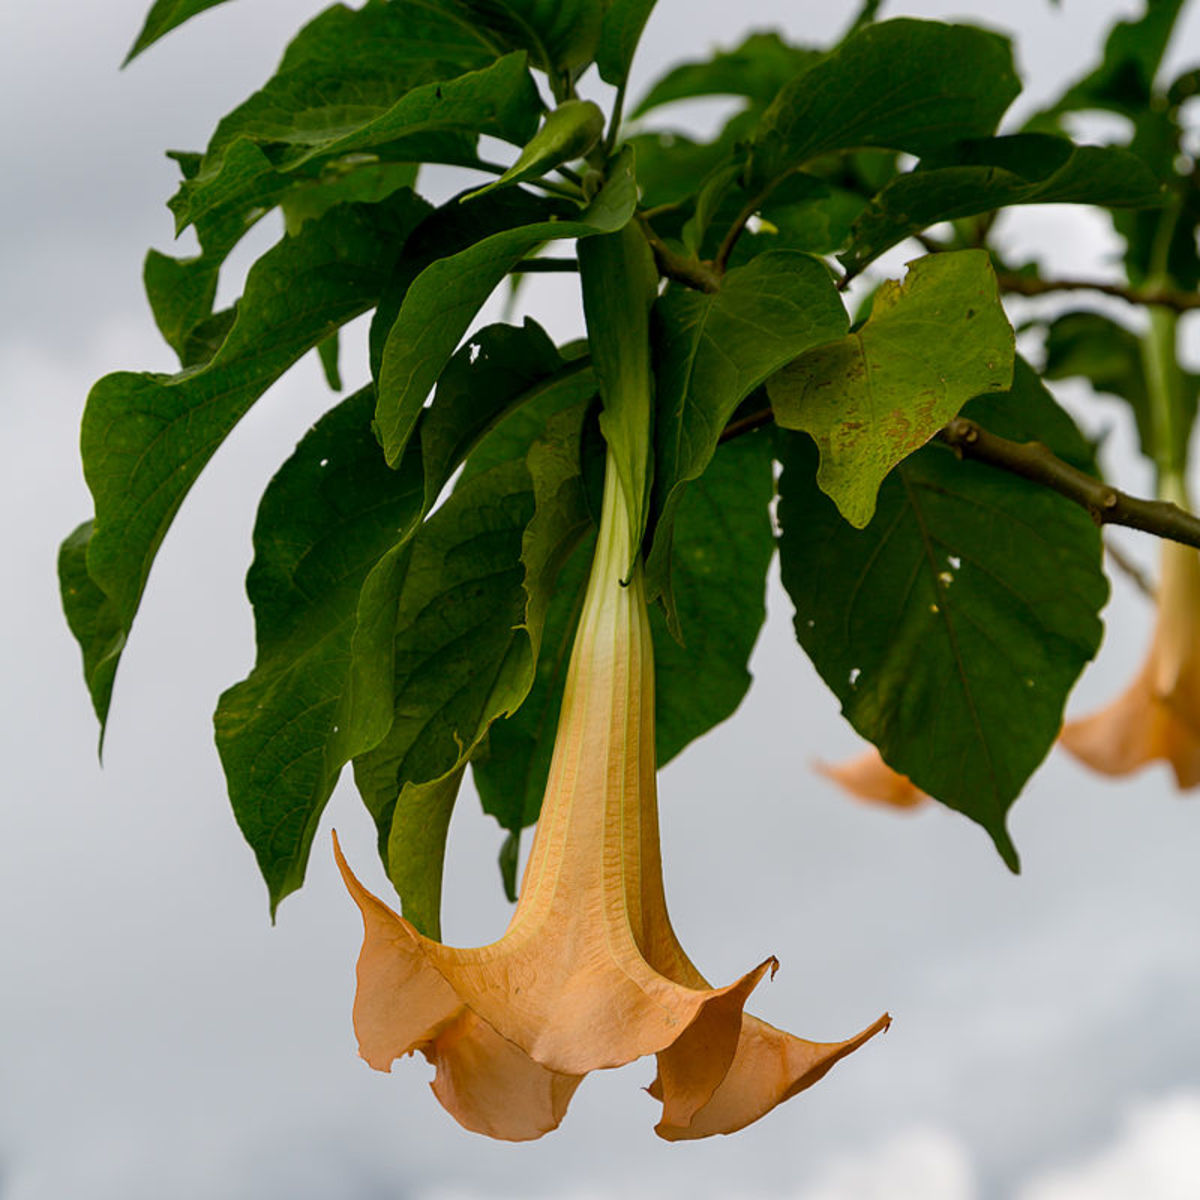 How to Grow Brugmansia (Angel's Trumpet) Indoors or Outdoors